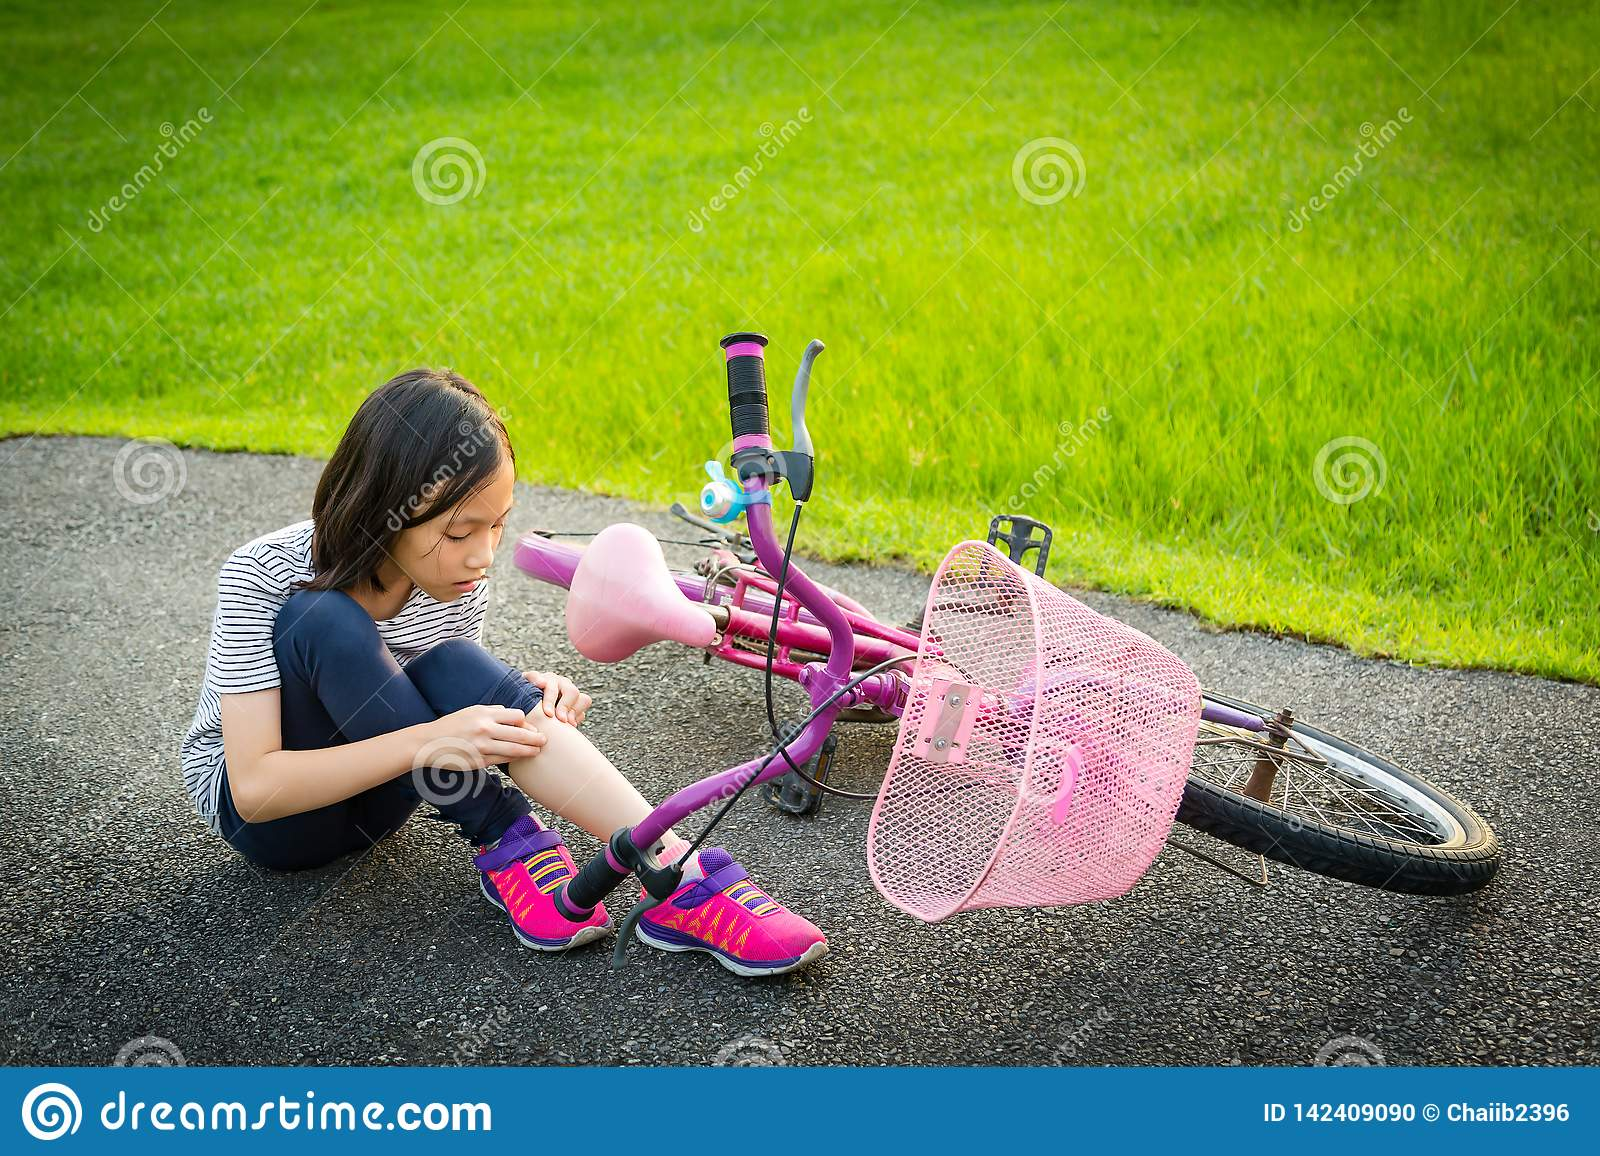 Asian little girl sitting down on the road with a leg pain due to a bicycle accident,the bike fall near the child,girl riding a